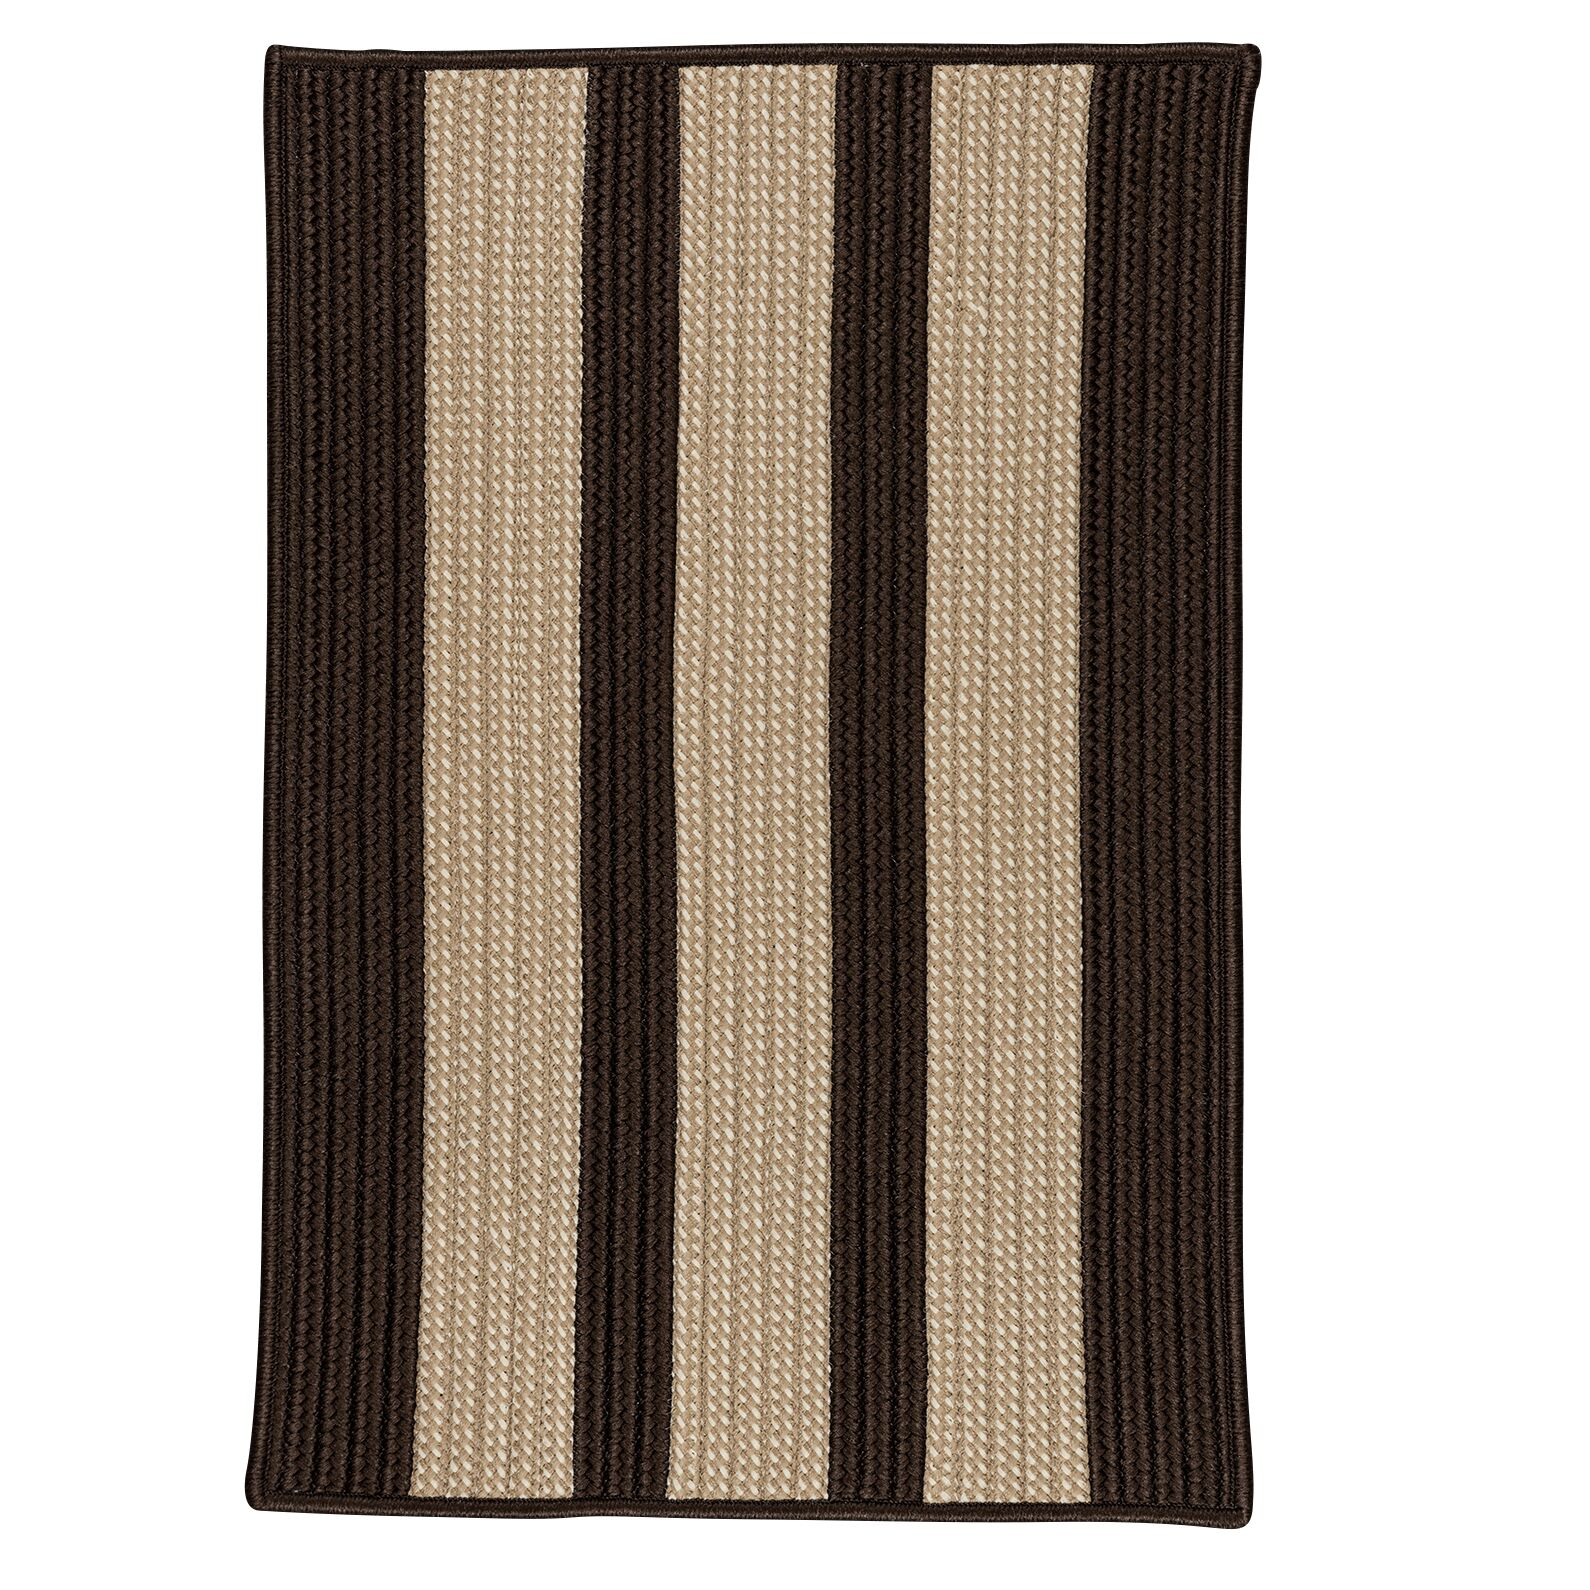 Seal Harbor Brown Indoor/Outdoor Area Rug Rug Size: Square 8'